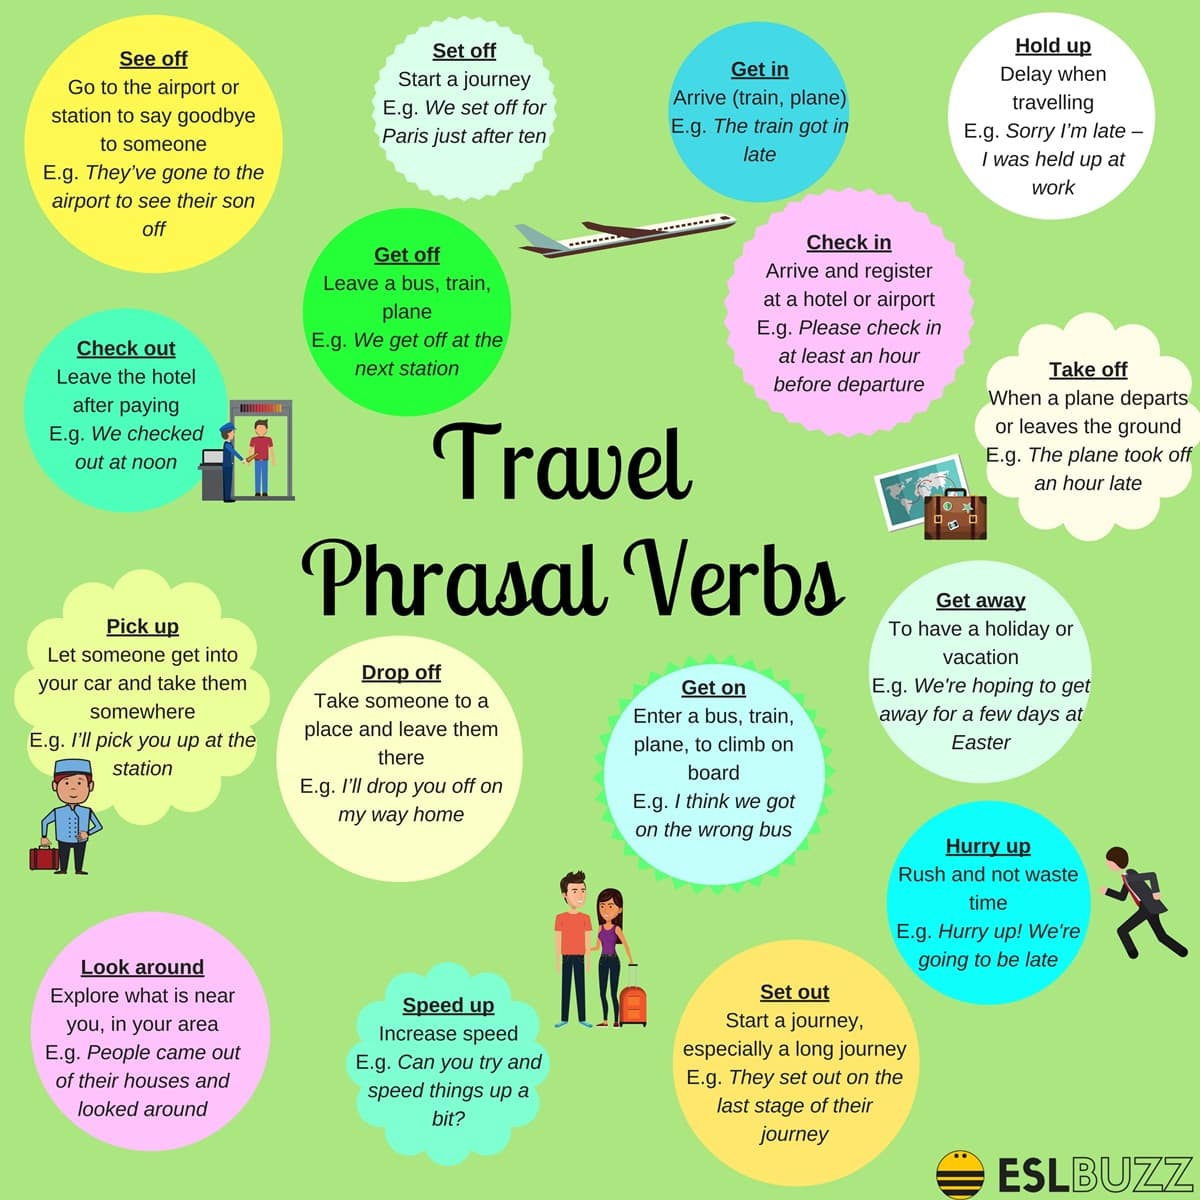 Travel Phrasal Verbs And Expressions In English